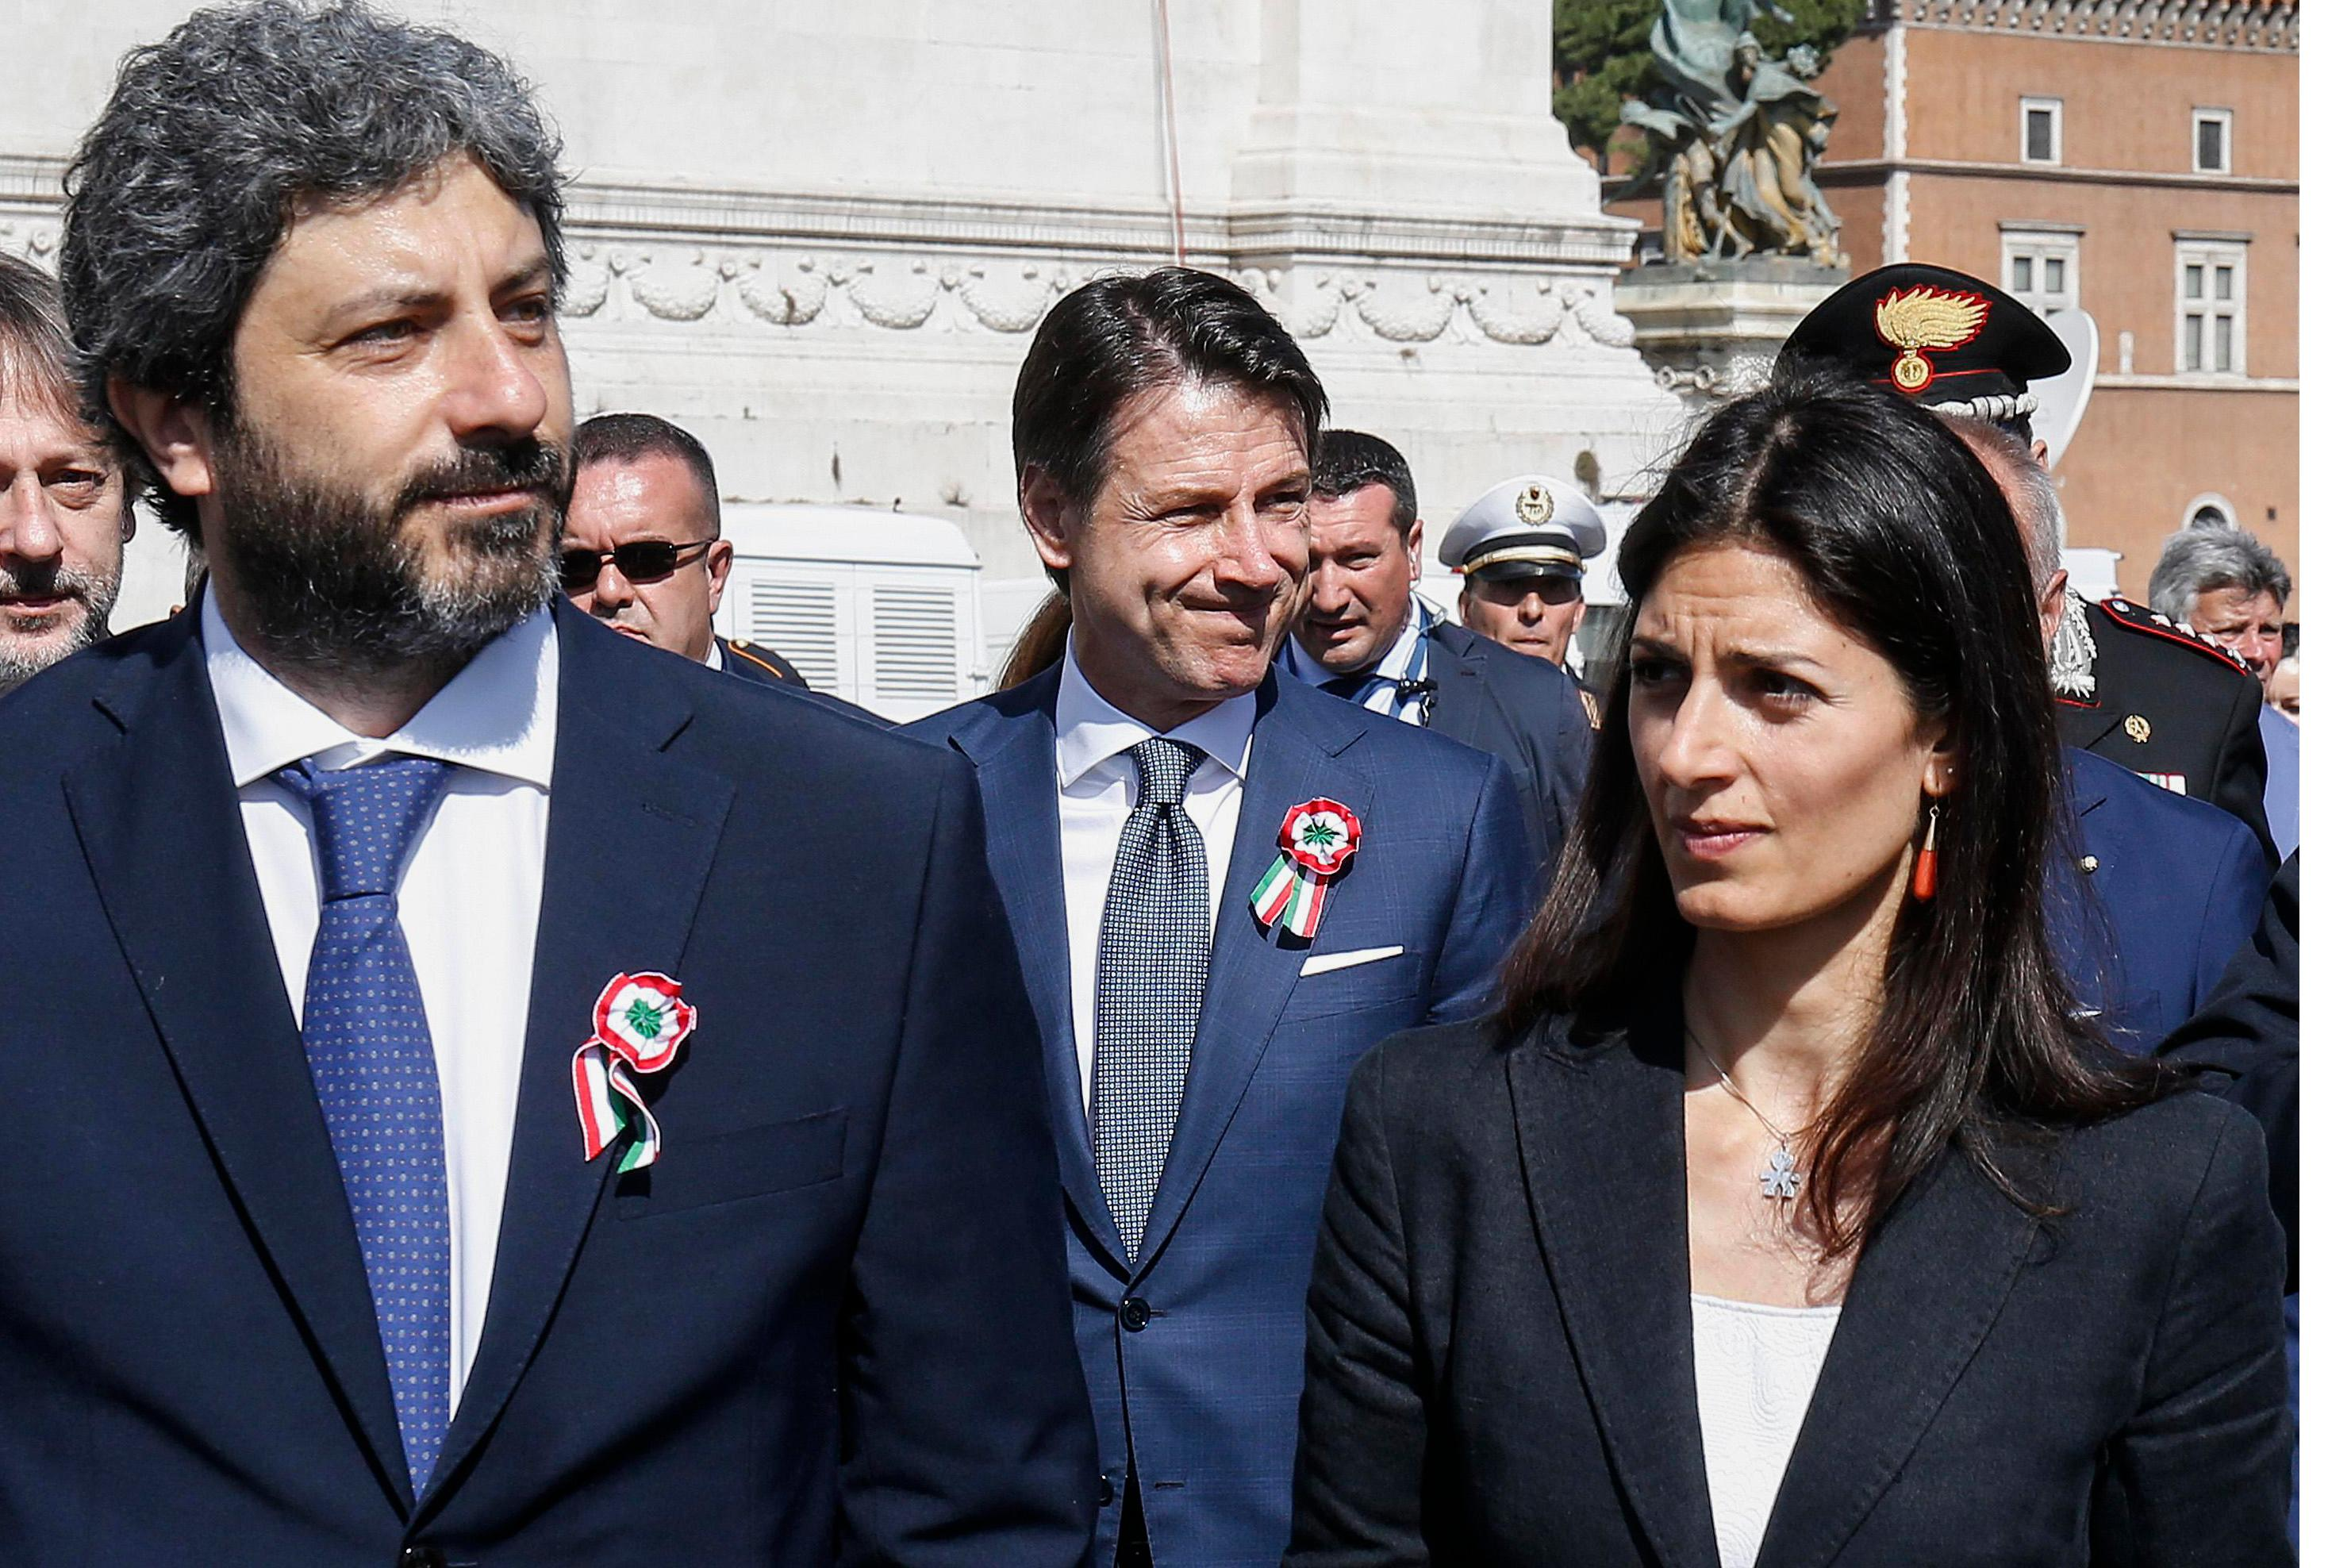 Italian Premier Giuseppe Conte, center, is flanked by Roberto Fico, left, president of the Lower Chamber, and Rome's Mayor Virginia Raggi, on the occasion of celebrations for Italy's Republic Day, in Rome Saturday, June 2, 2018. (Fabio Frustaci/ANSA via AP)